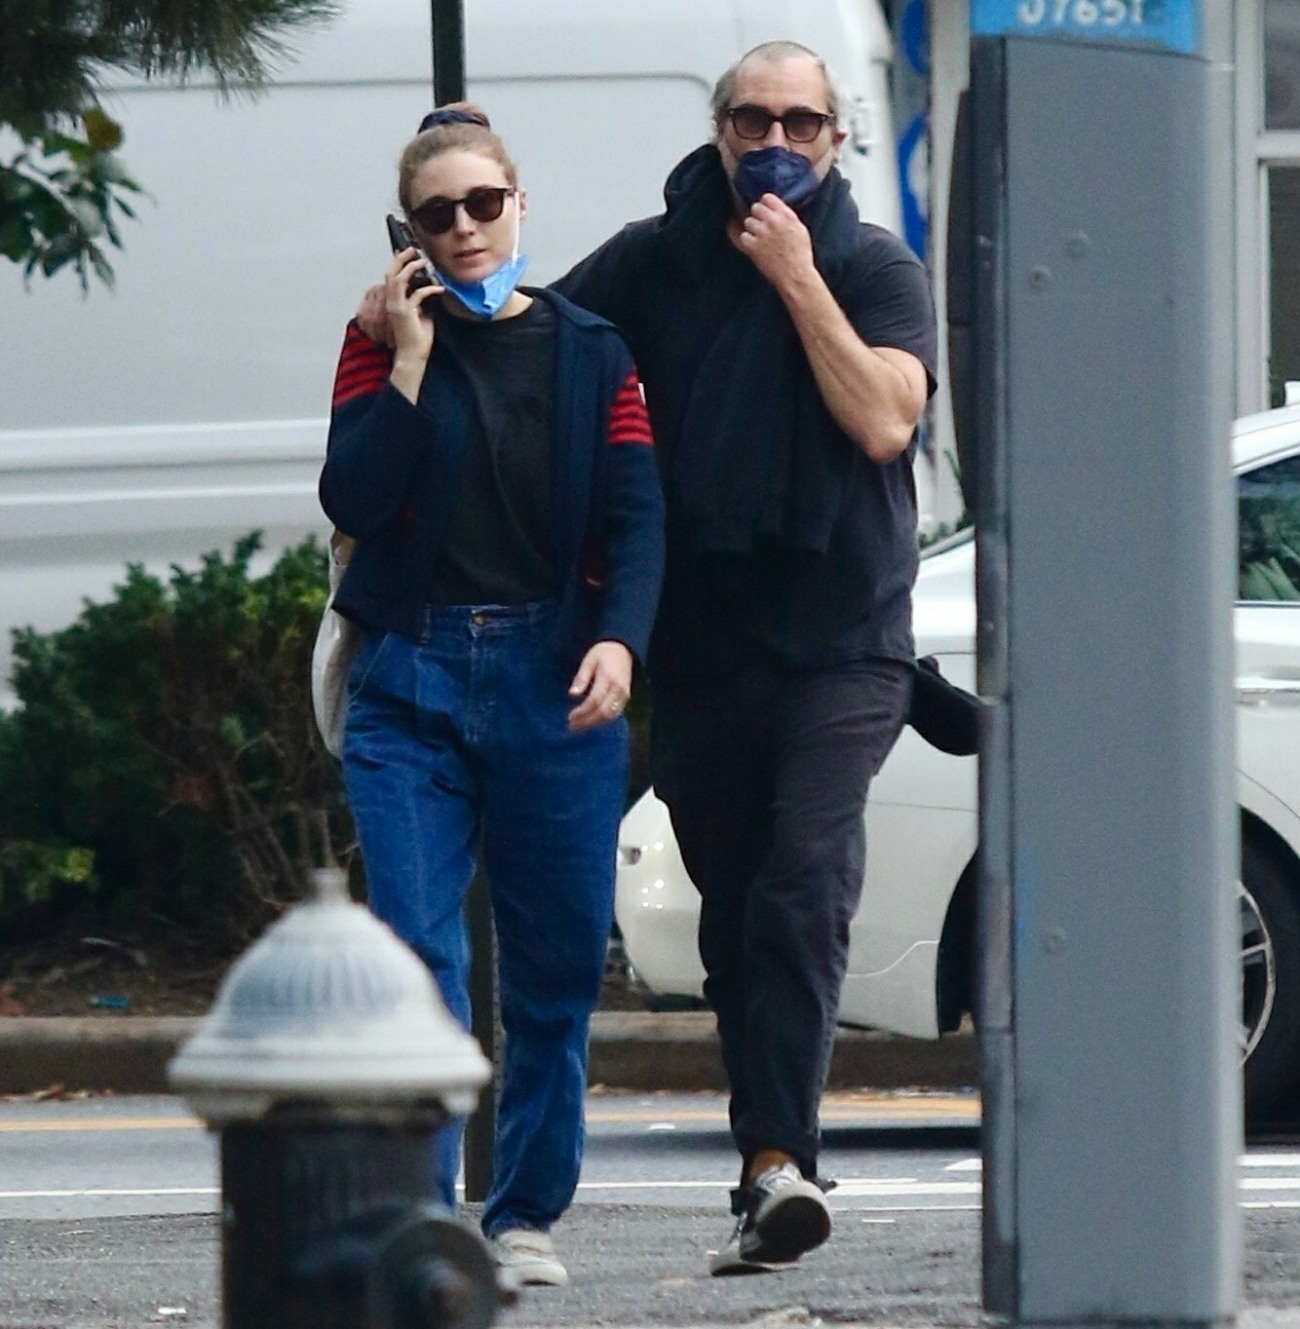 Joaquin Phoenix and Rooney Mara are totally inseparable during stroll in Manhattan